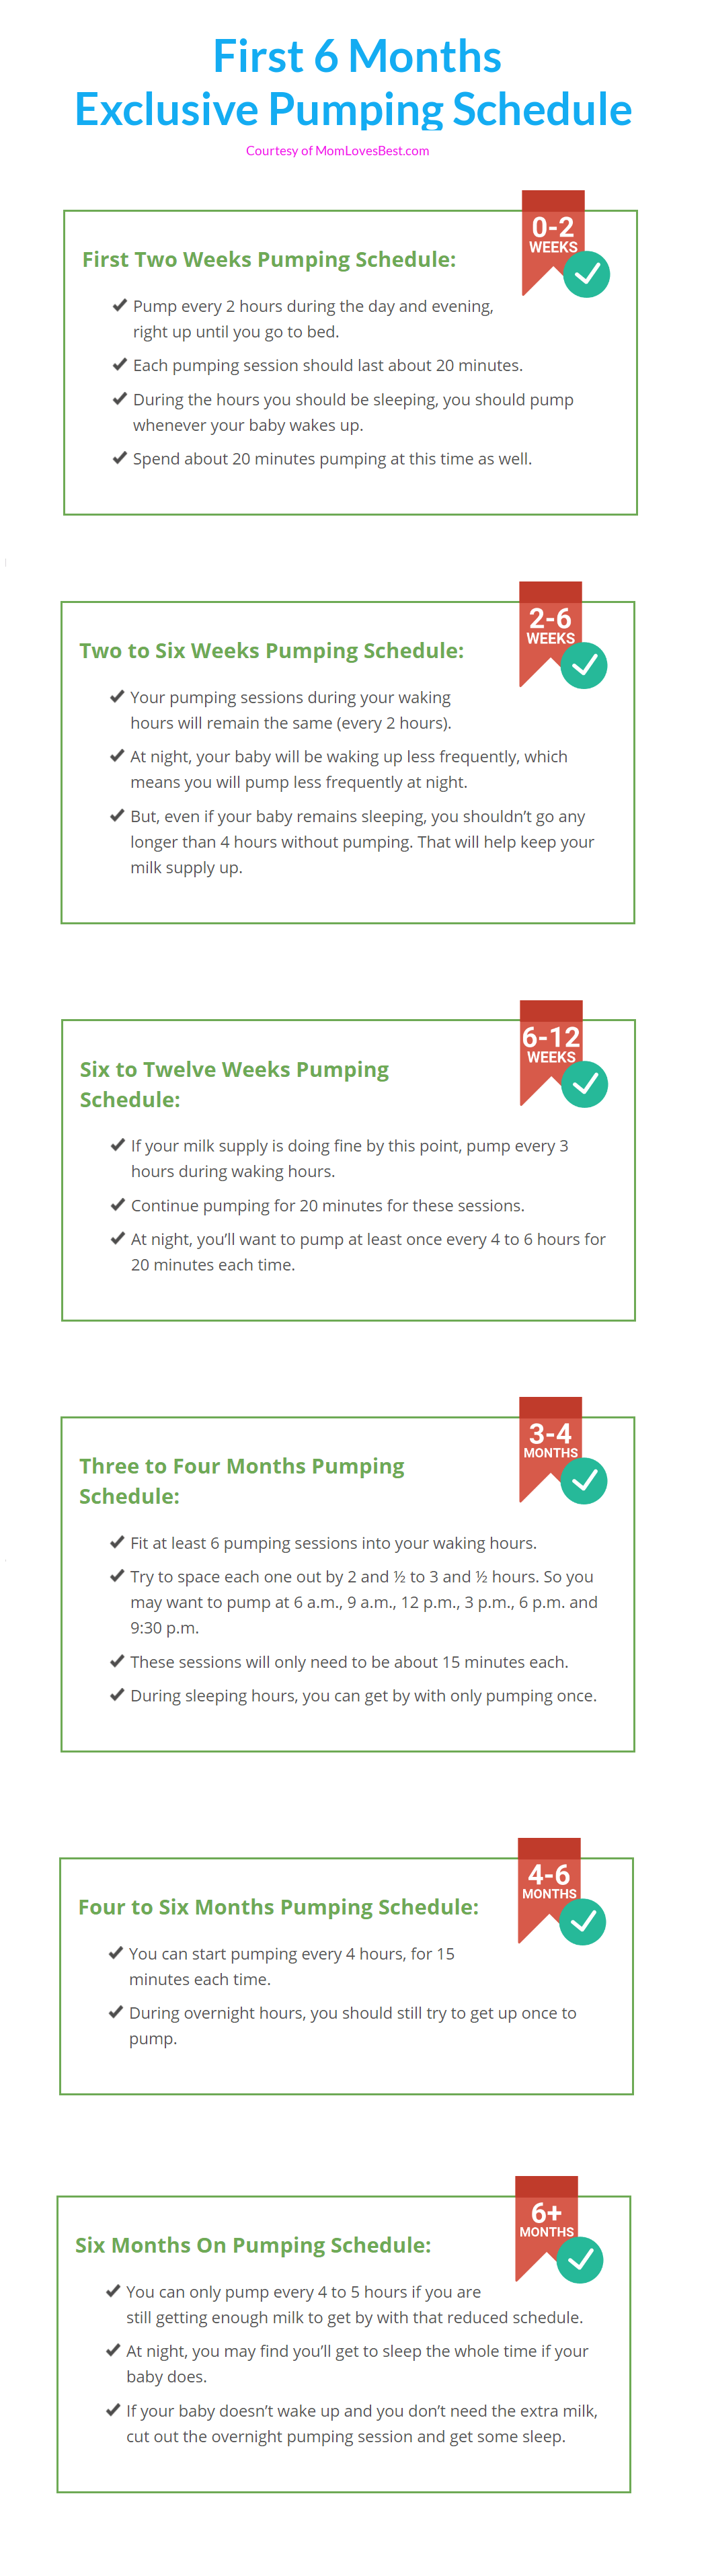 First Two Weeks Pumping Schedule